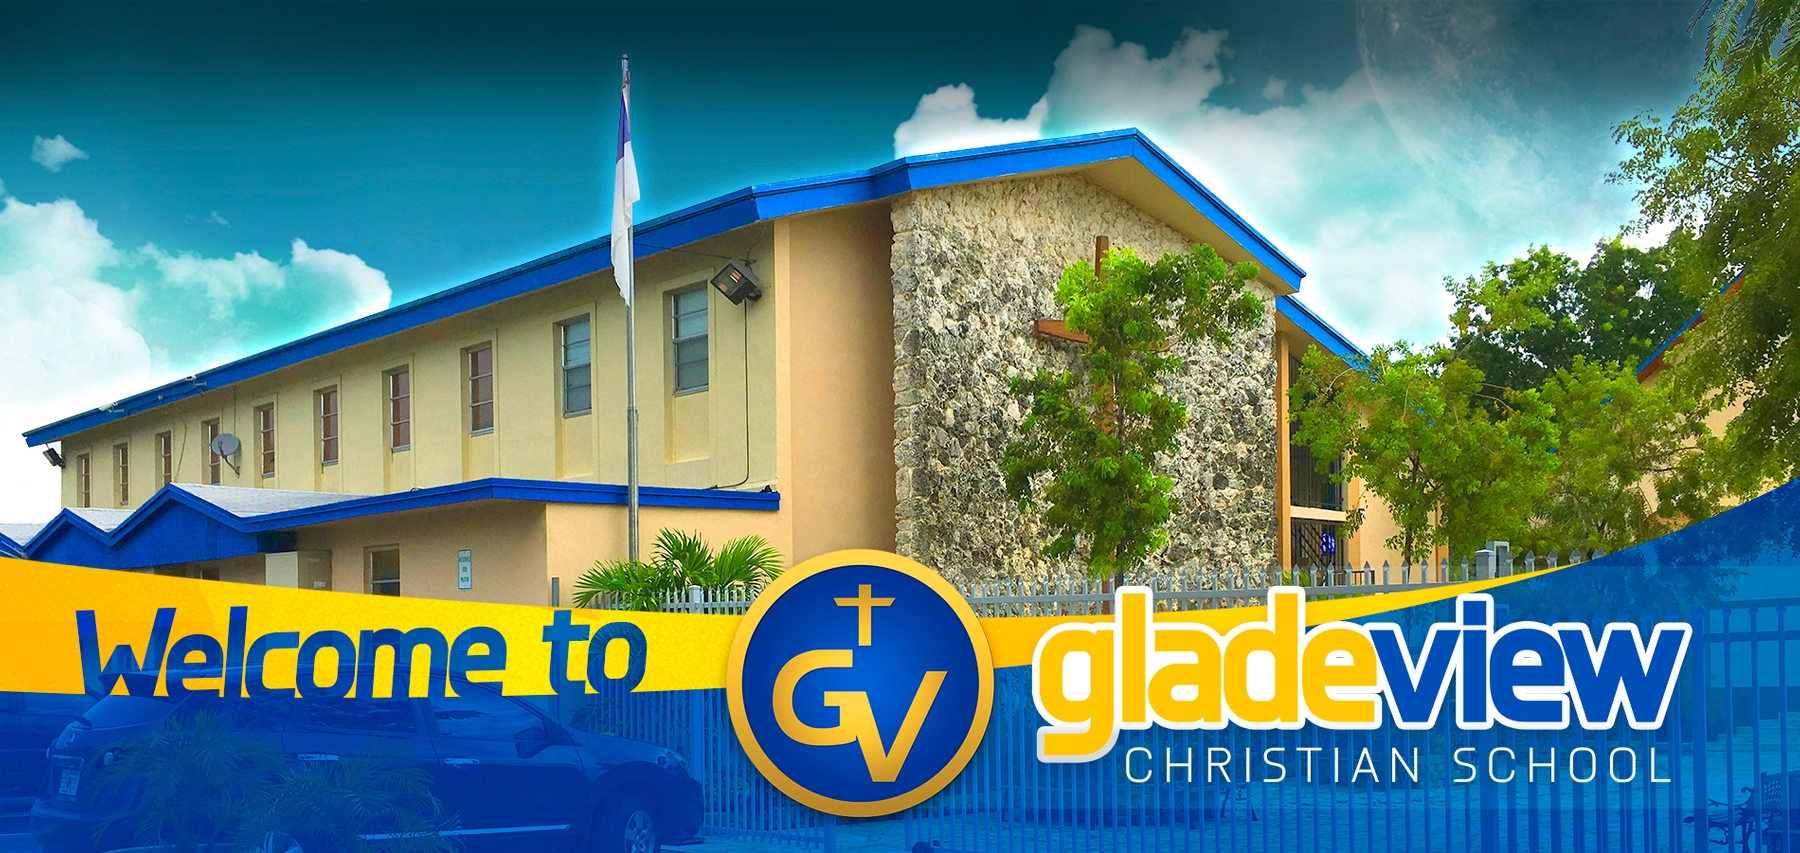 Gladeview Christian School